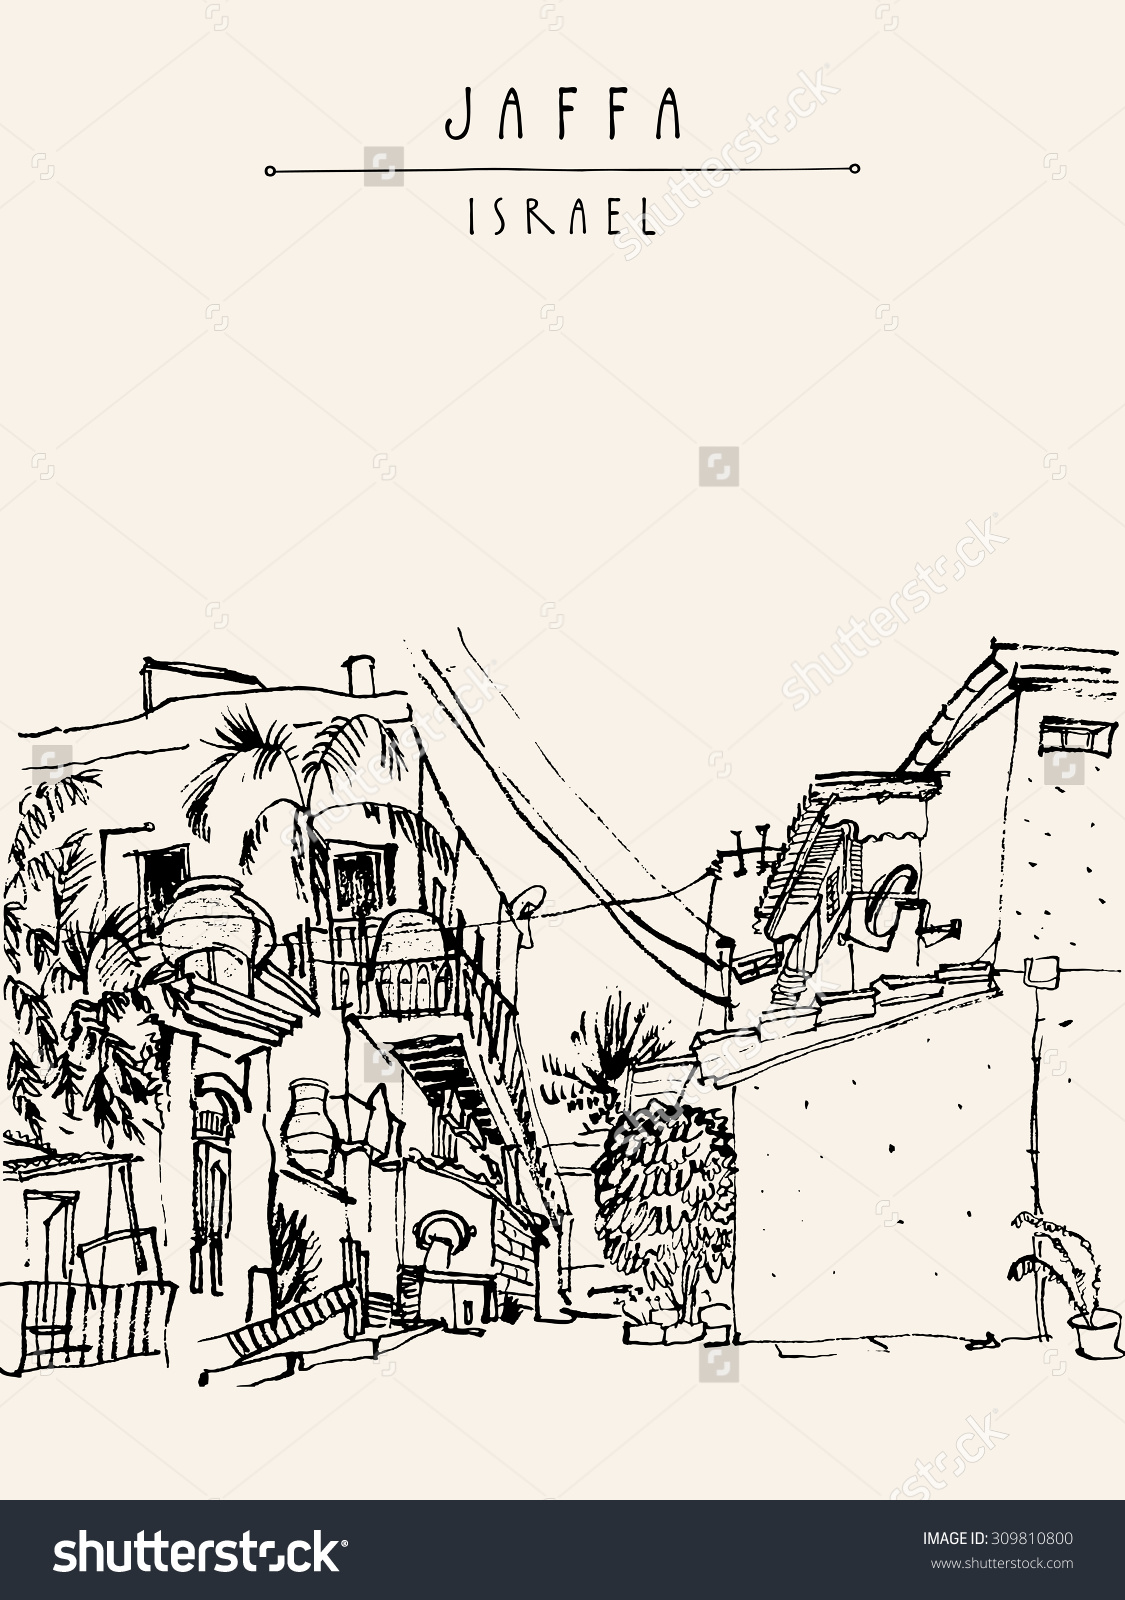 Jaffa (Yafo), Tel Aviv, Israel. Vector Illustration. Grungy Black.